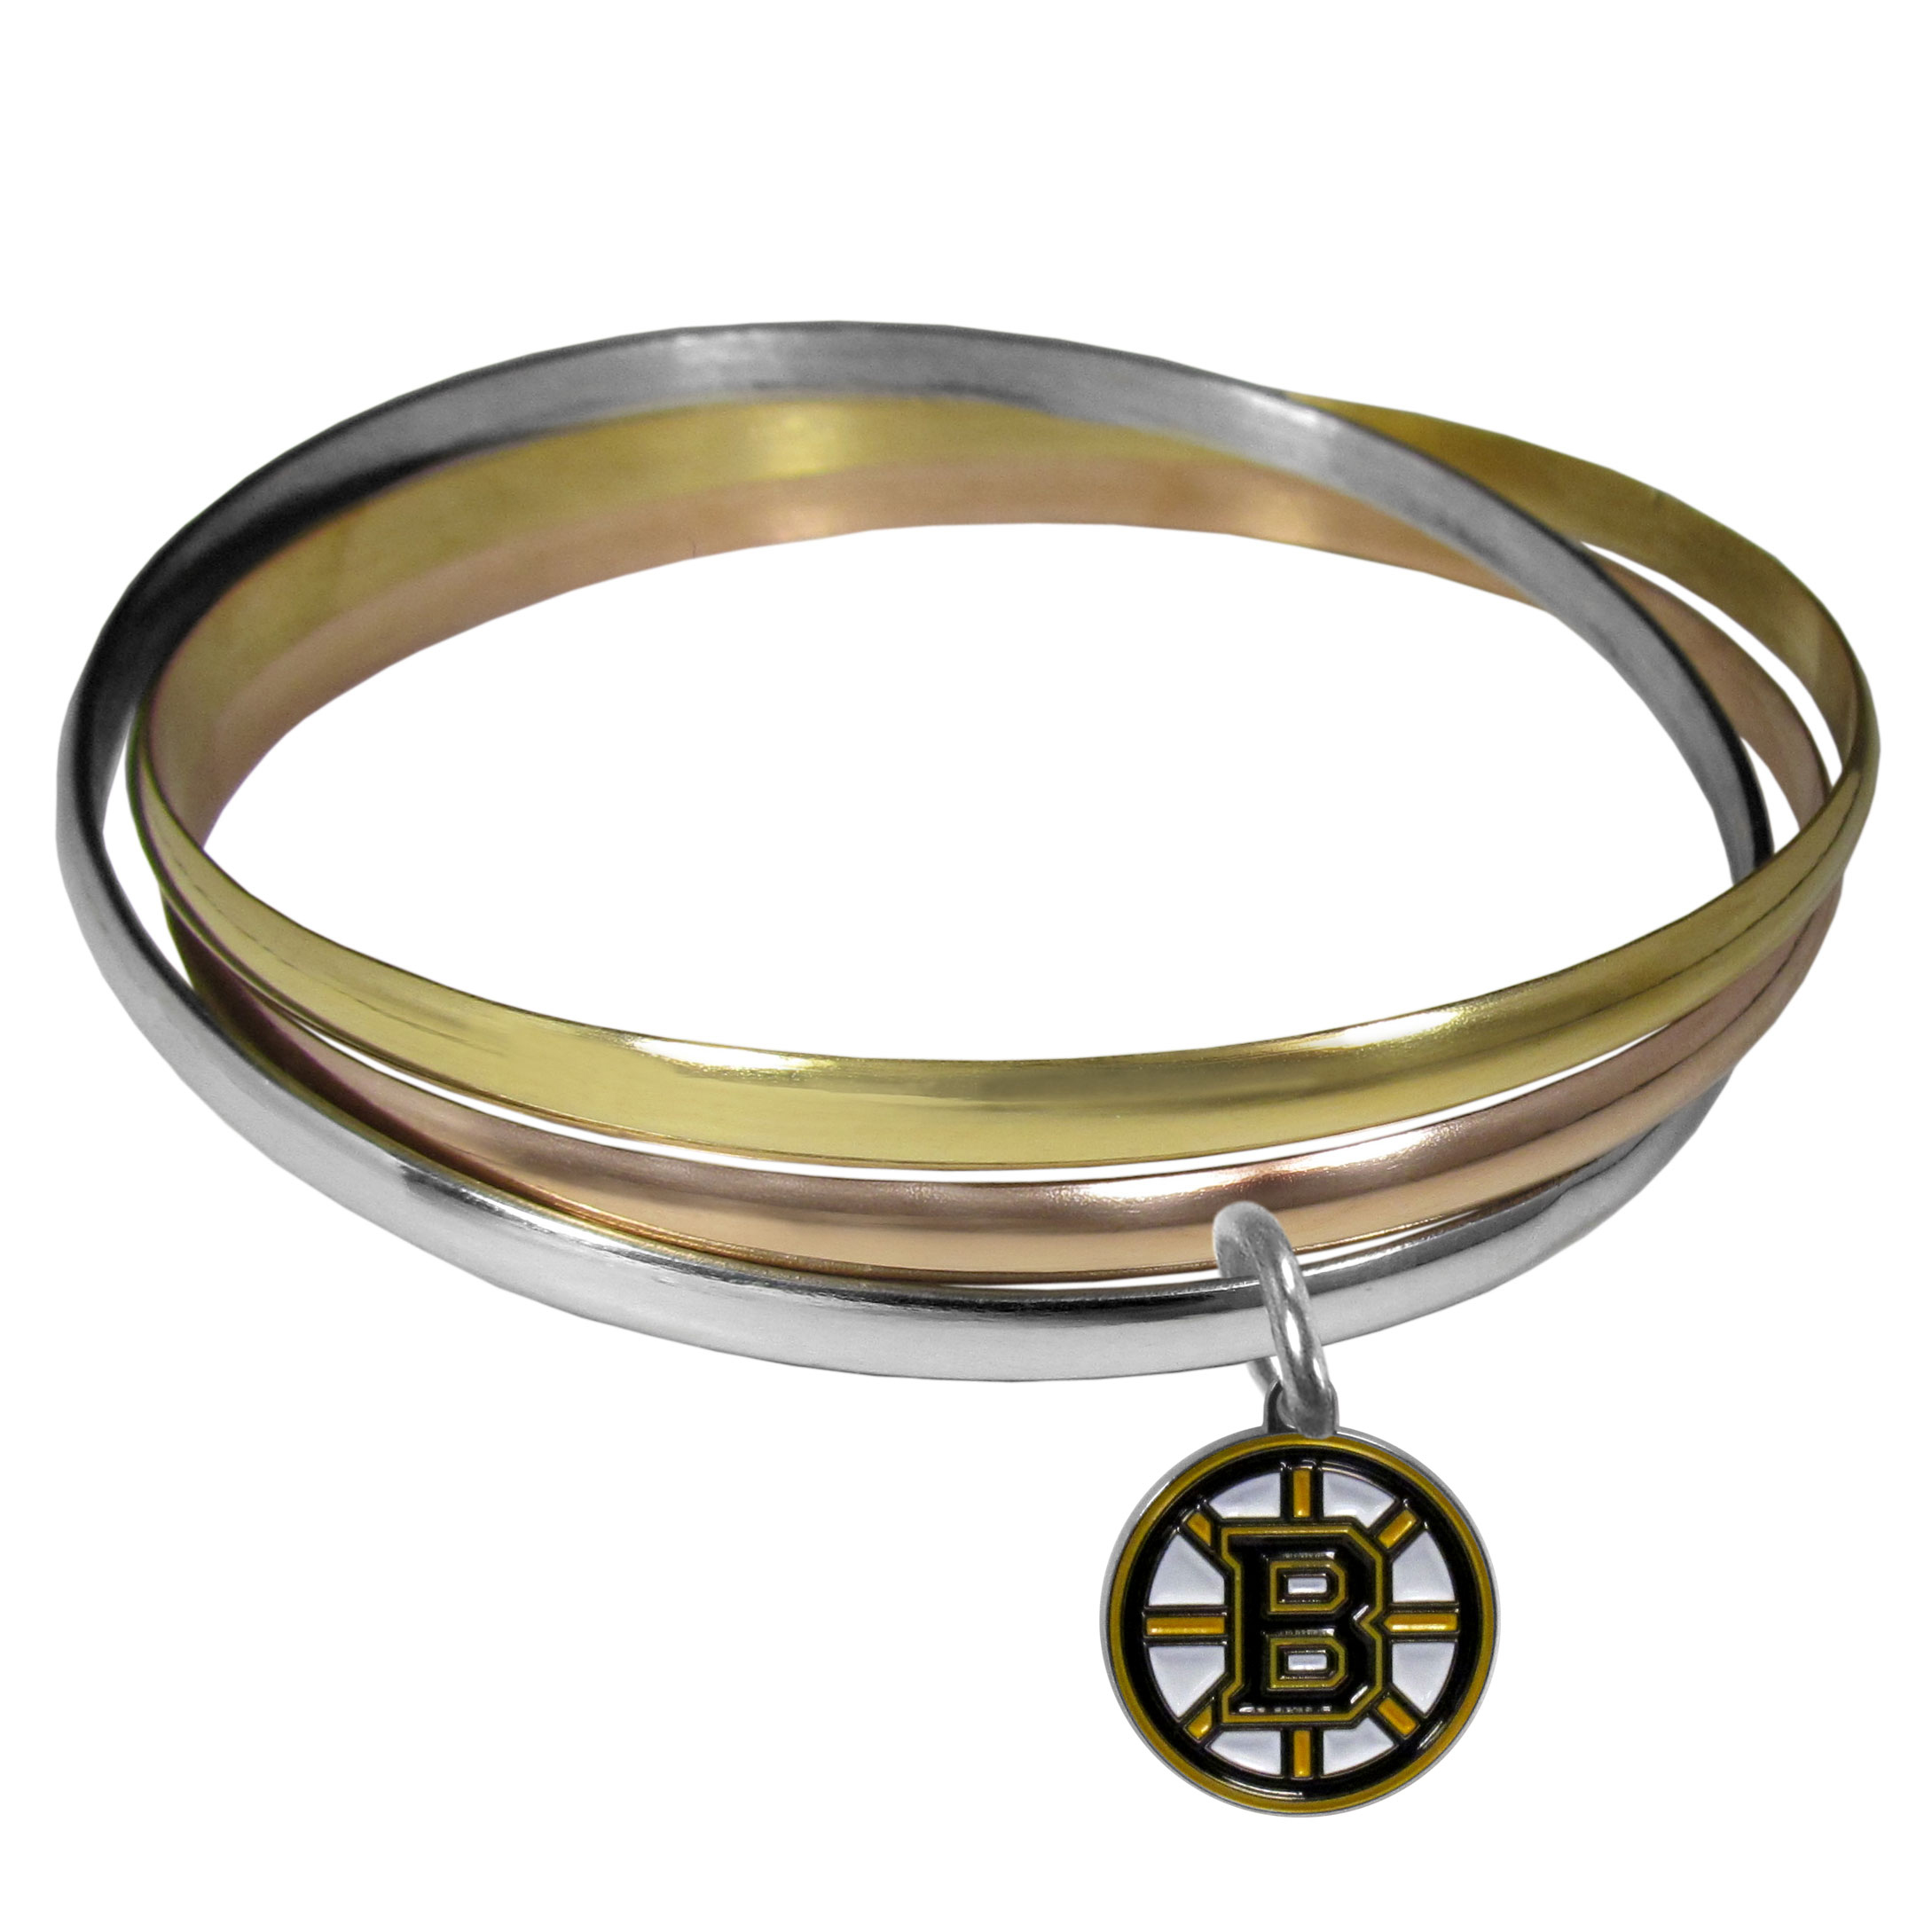 Boston Bruins® Tri-color Bangle Bracelet - These beautiful bangles come in a interlocking style and feature a fully cast Boston Bruins® charm with enameled team colors. The bracelet has a silver toned bangle, gold tone bangle and brass toned bangle.